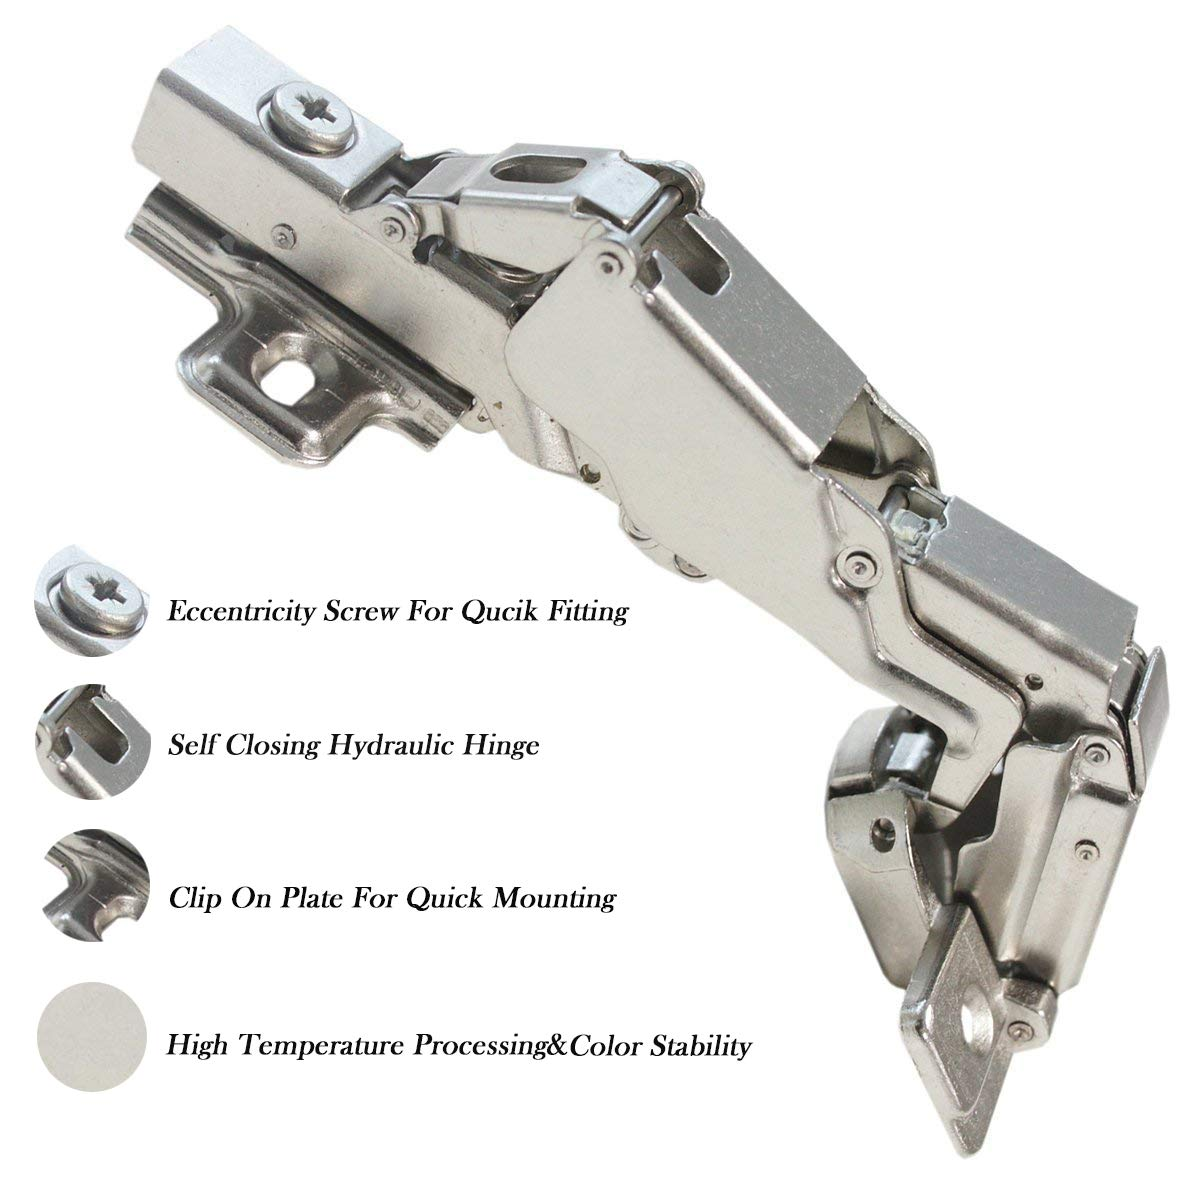 Full Overlay Frameless Cabinet Door Hinges, 165 Degree Soft Closing Nickel Plating Durable European Style Concealed Hinges 10 Pair by Knobonly (Image #4)